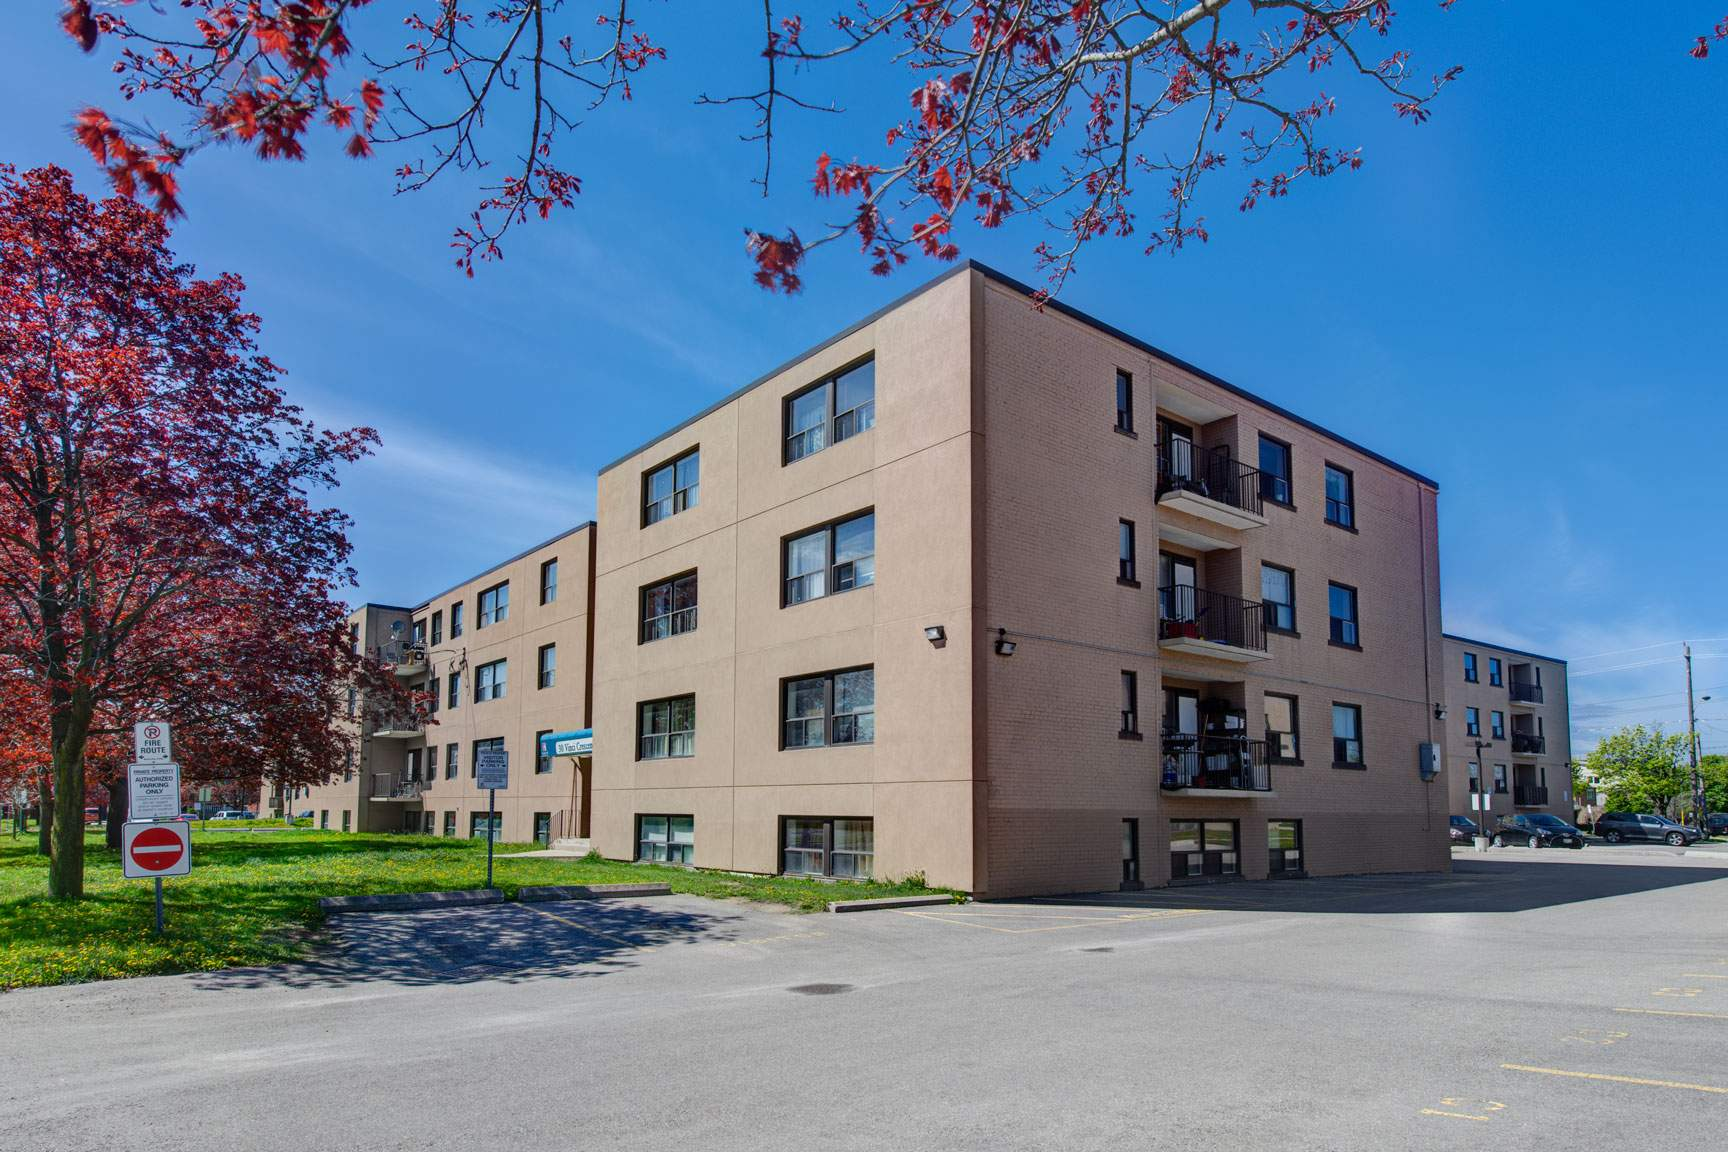 1 bedroom Apartments for rent in Toronto at Faywood - Vinci Community - Photo 02 - RentersPages – L402215